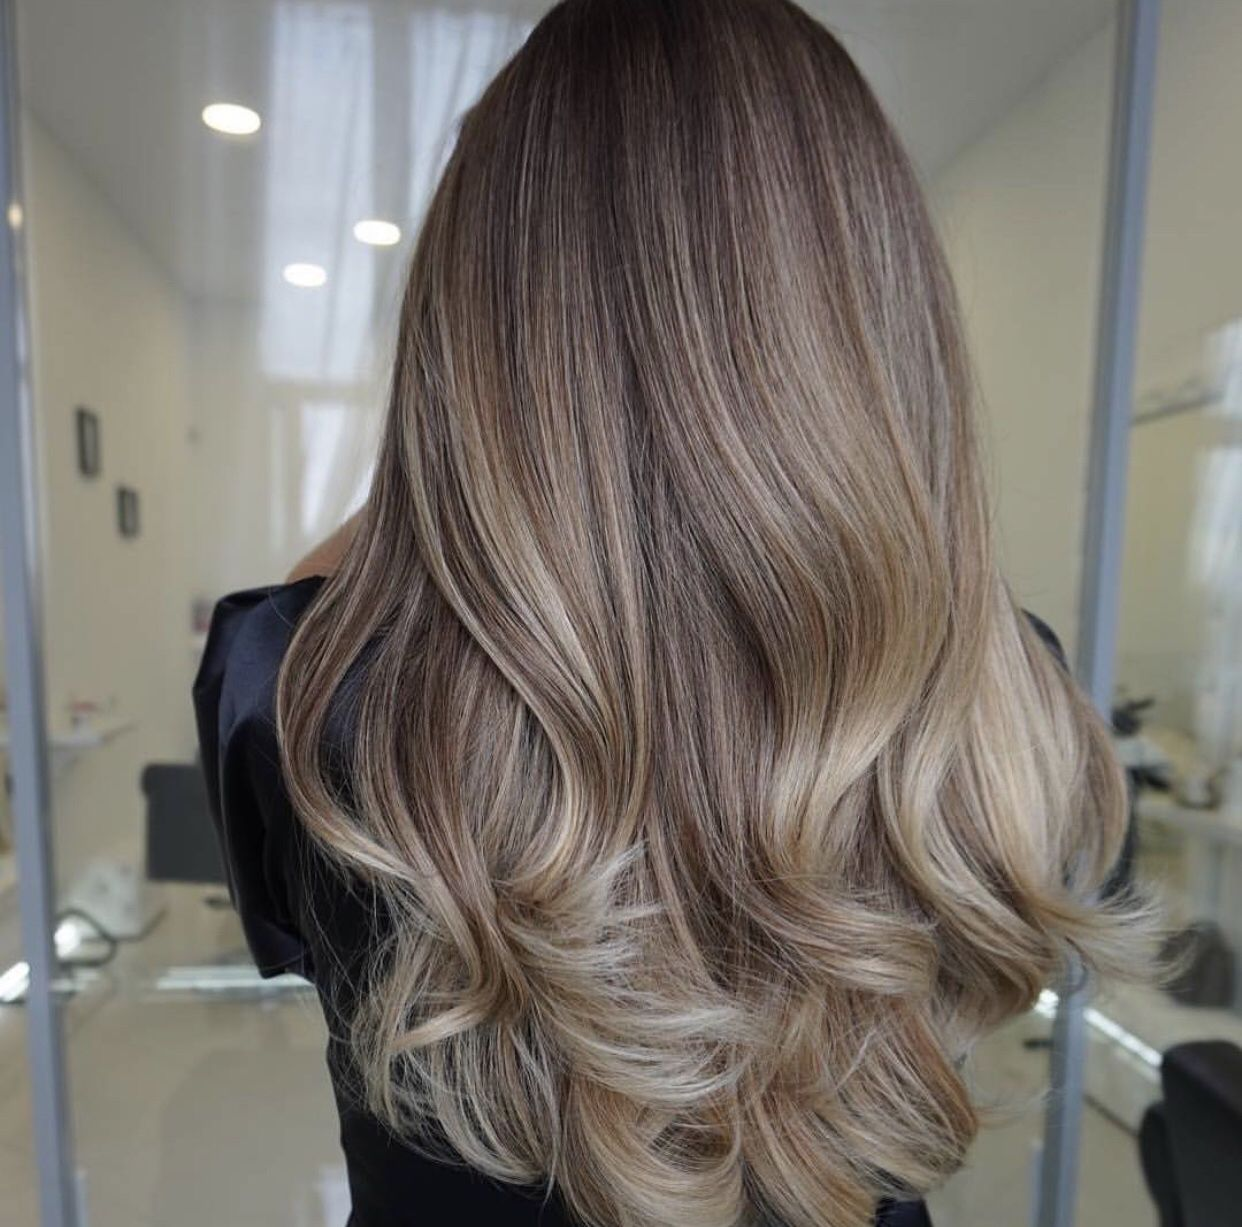 Pin By Christy S On Ombre Hair Beige Blonde Hair Hair Styles Long Hair Styles